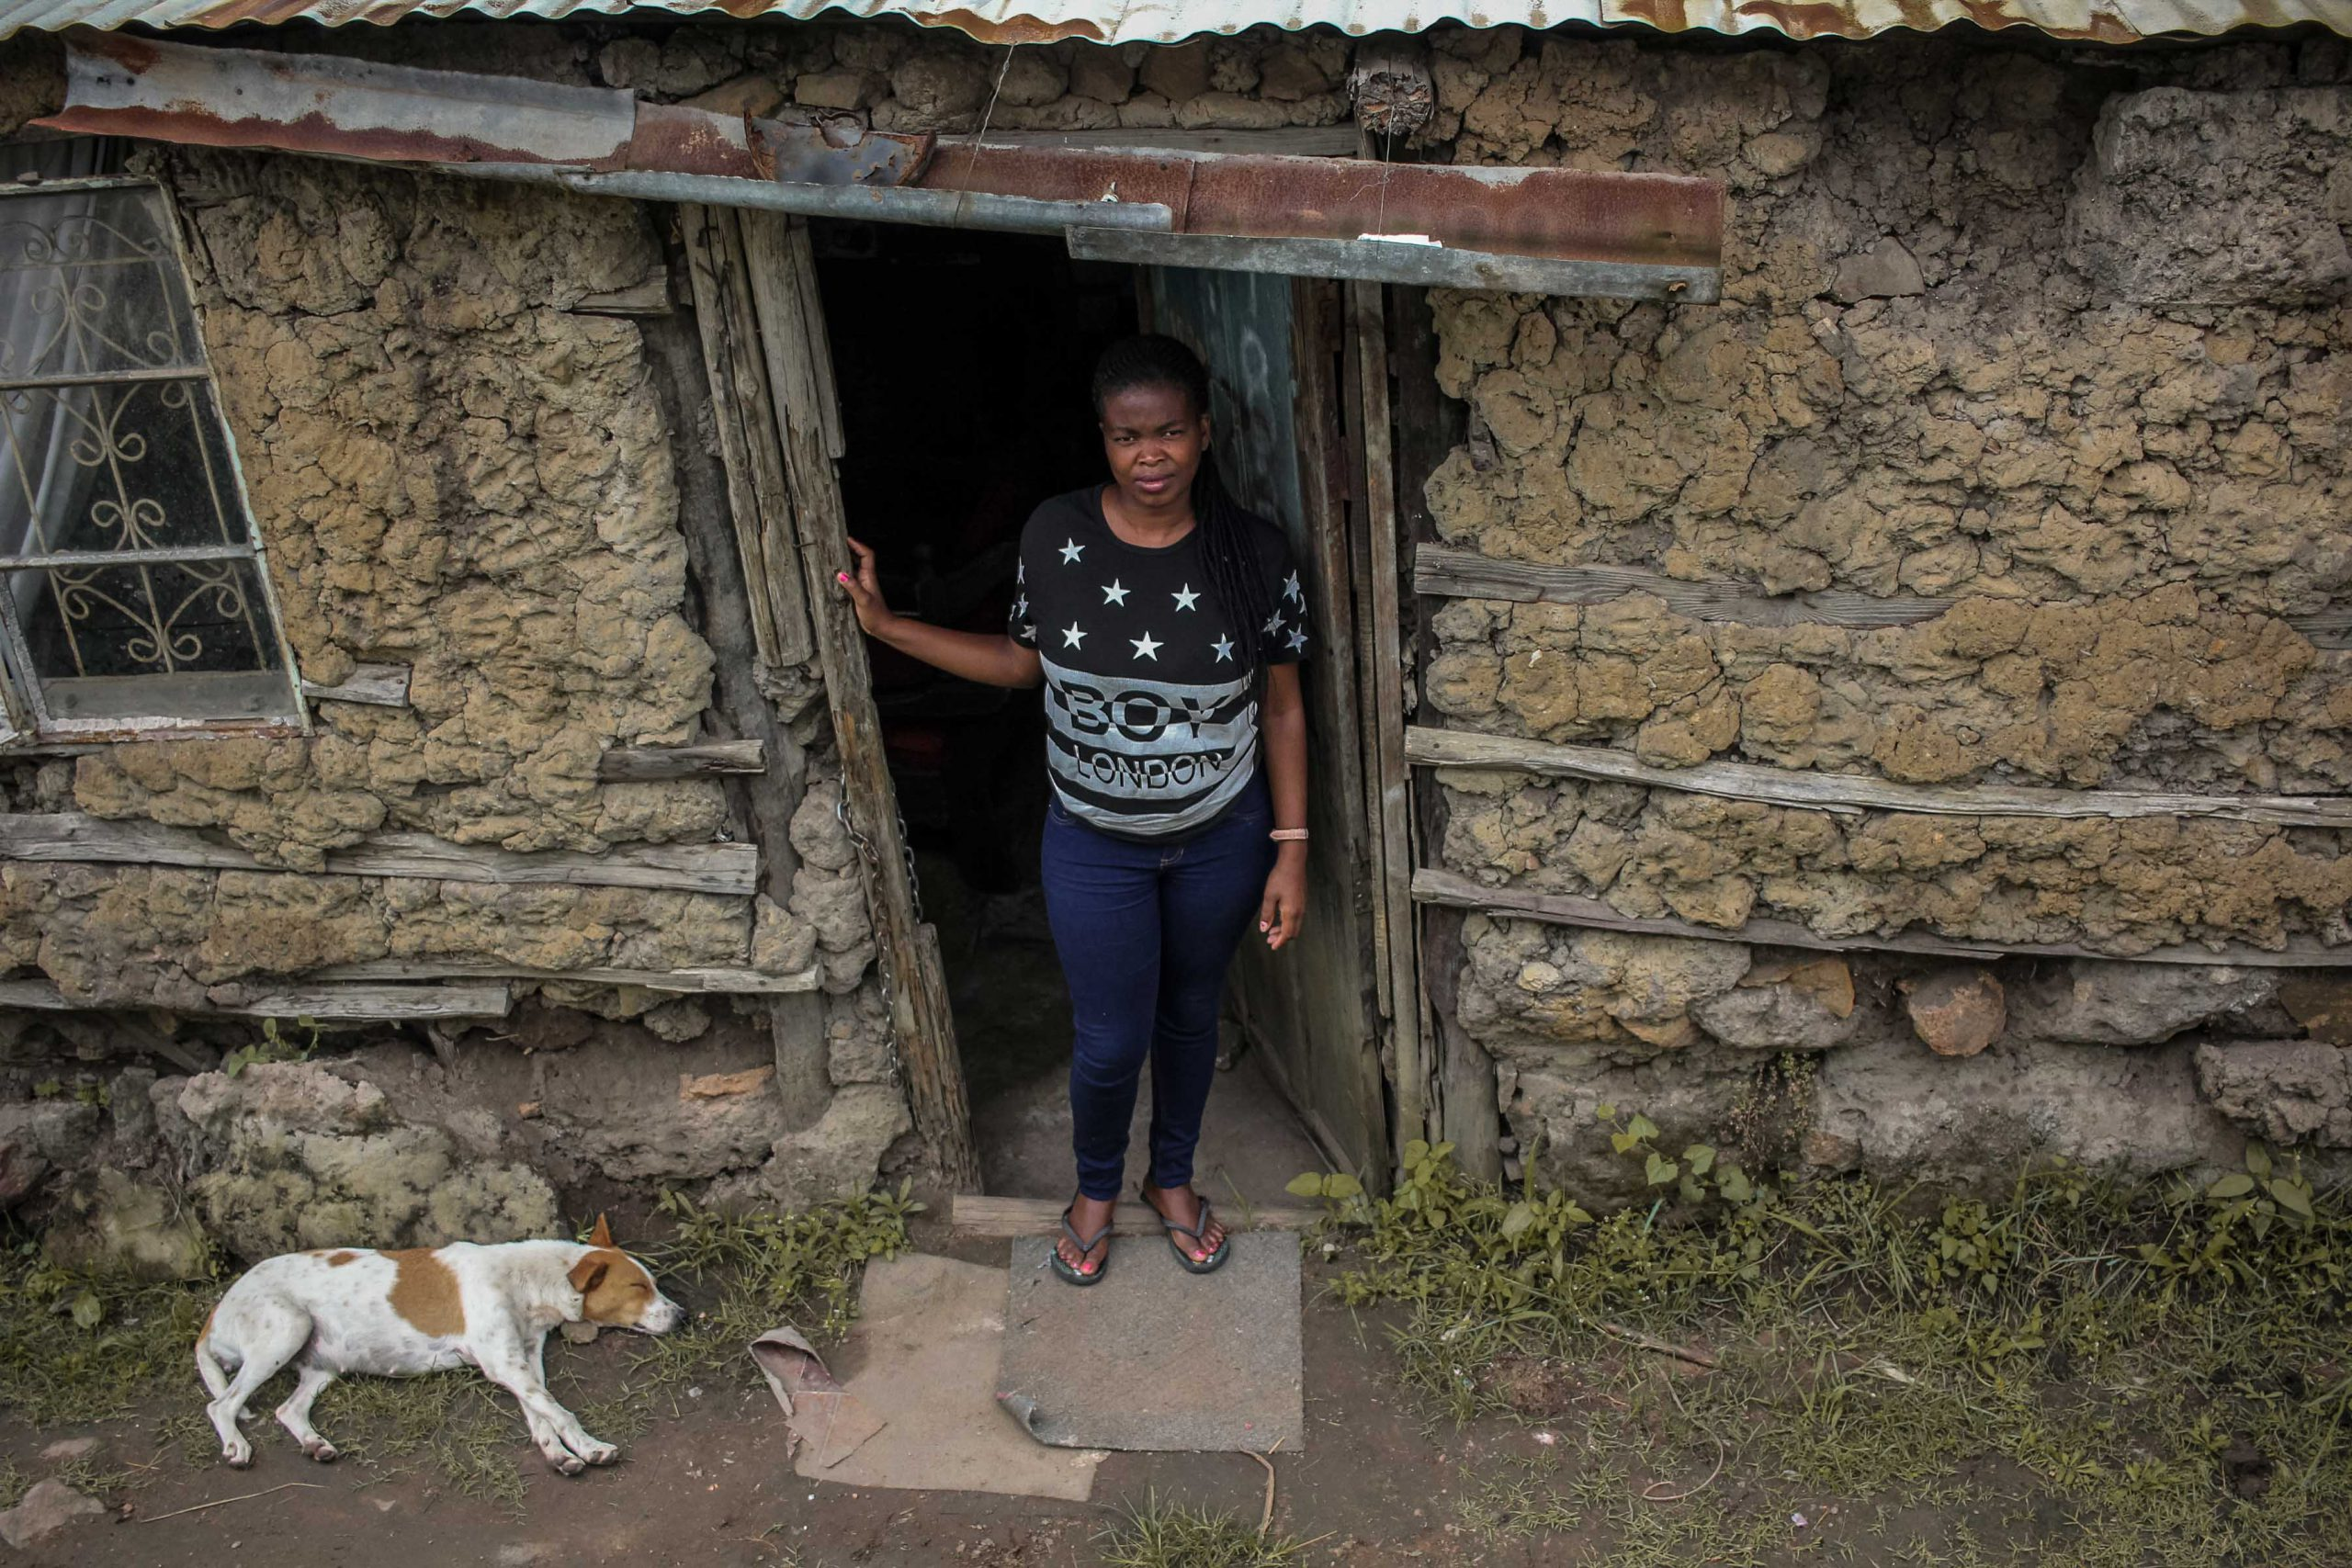 22 January 2020: Zama Mngadi is a full-time carer for her mother, who had a stroke in 2017. She says her dreams and aspirations have been destroyed, and she lives in fear of their house collapsing.